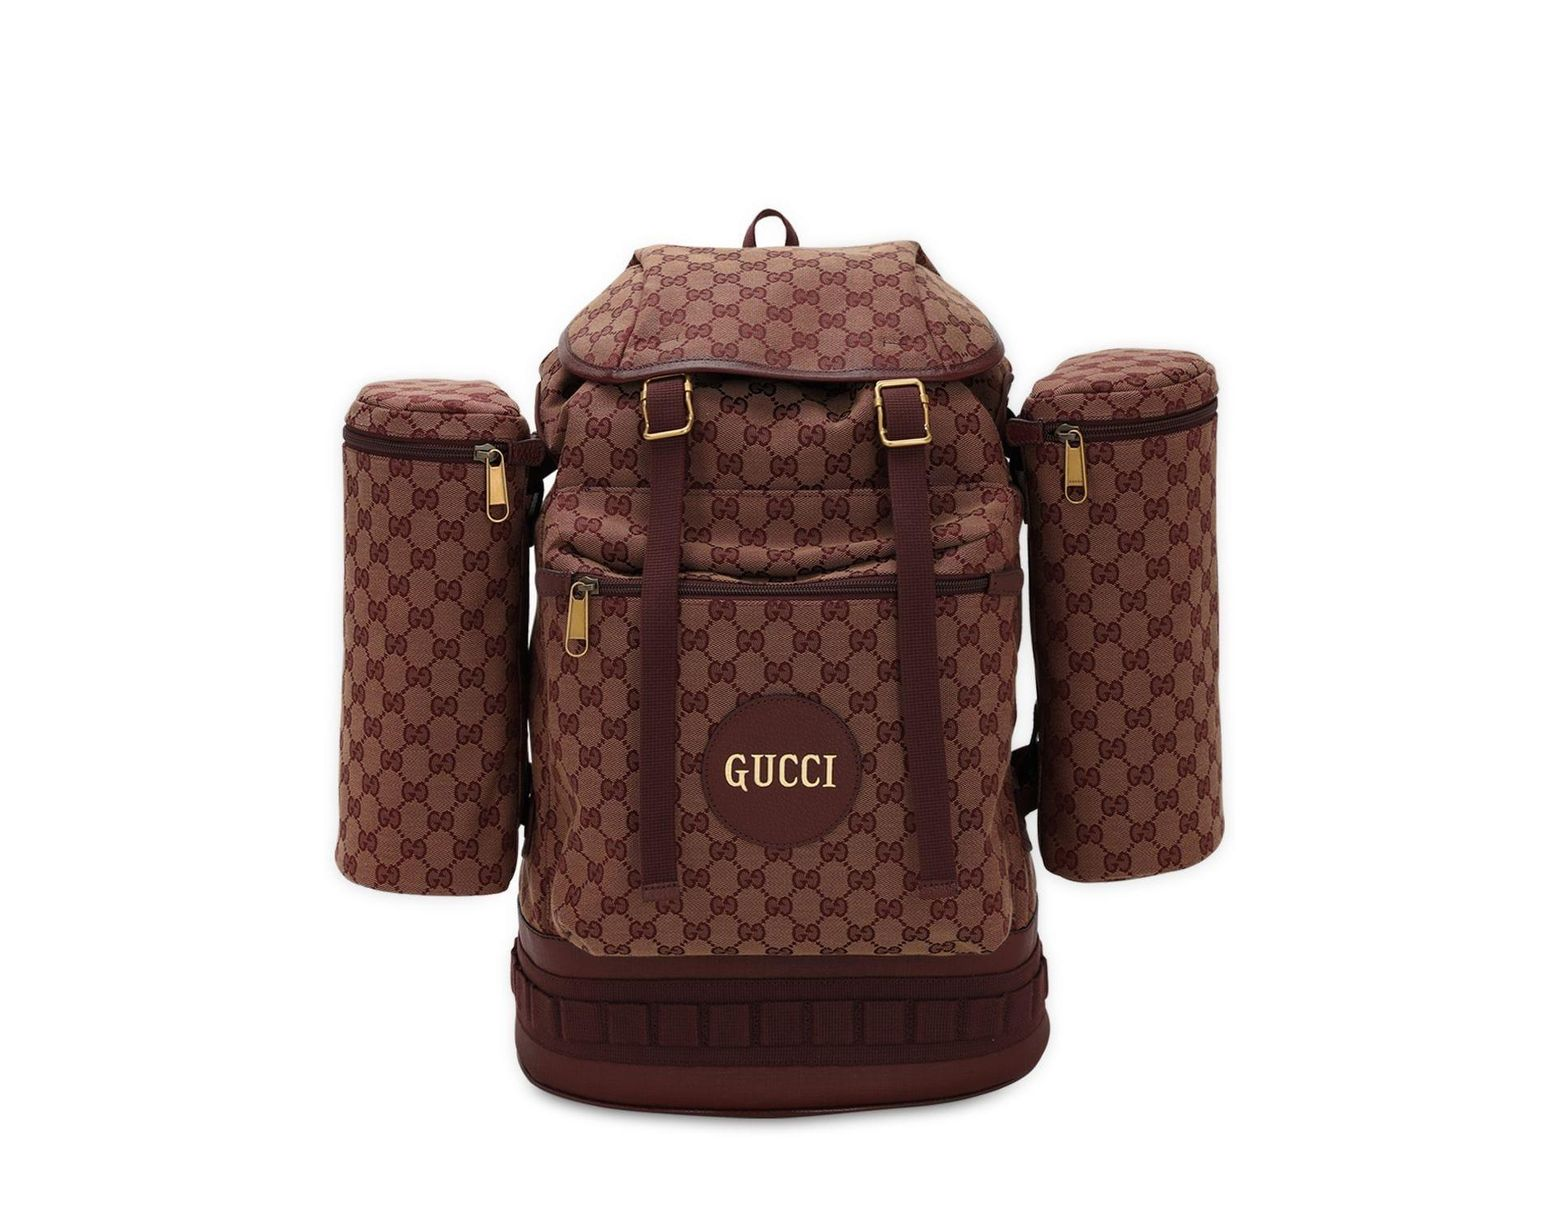 c2abb96ad Gucci Brown Canvas Backpack | The Shred Centre